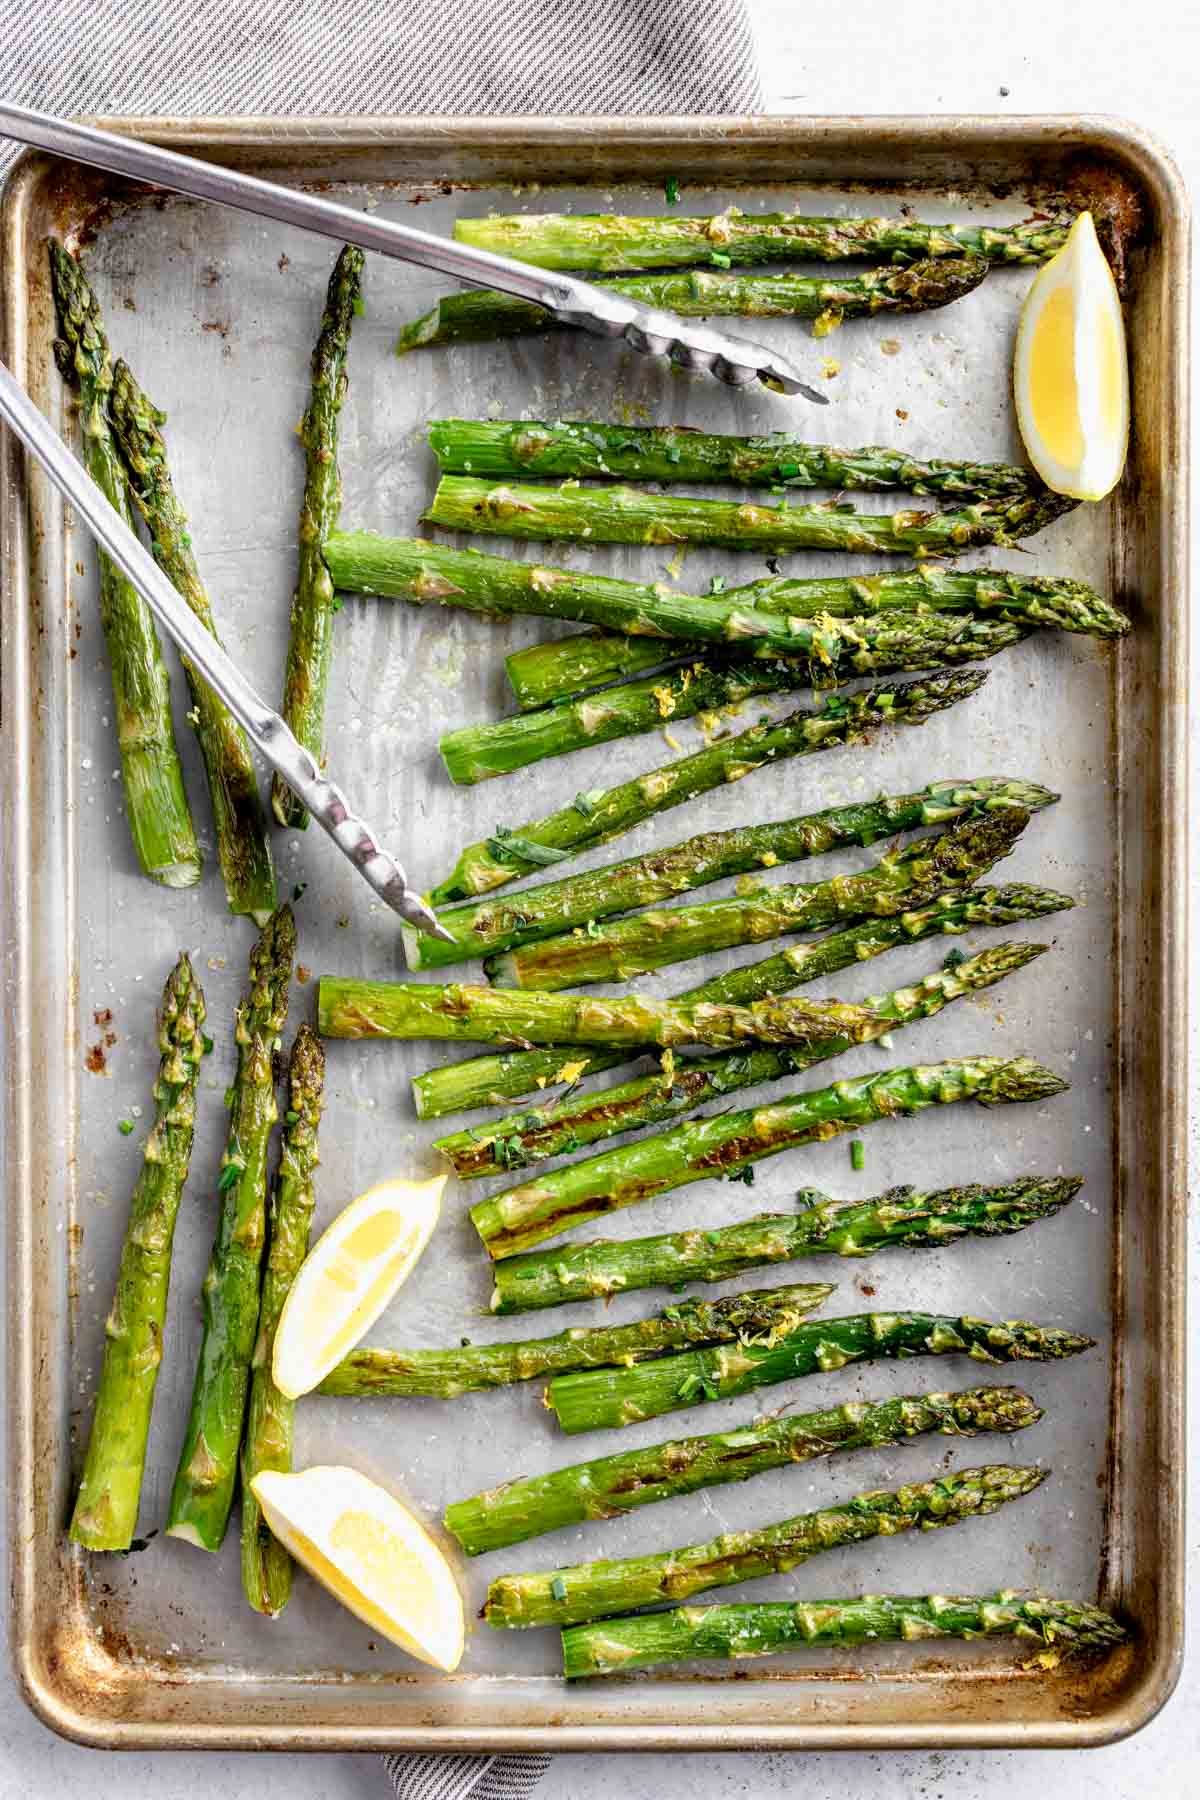 roasted asparagus on a sheet pan with tongs, herbs and lemon wedges